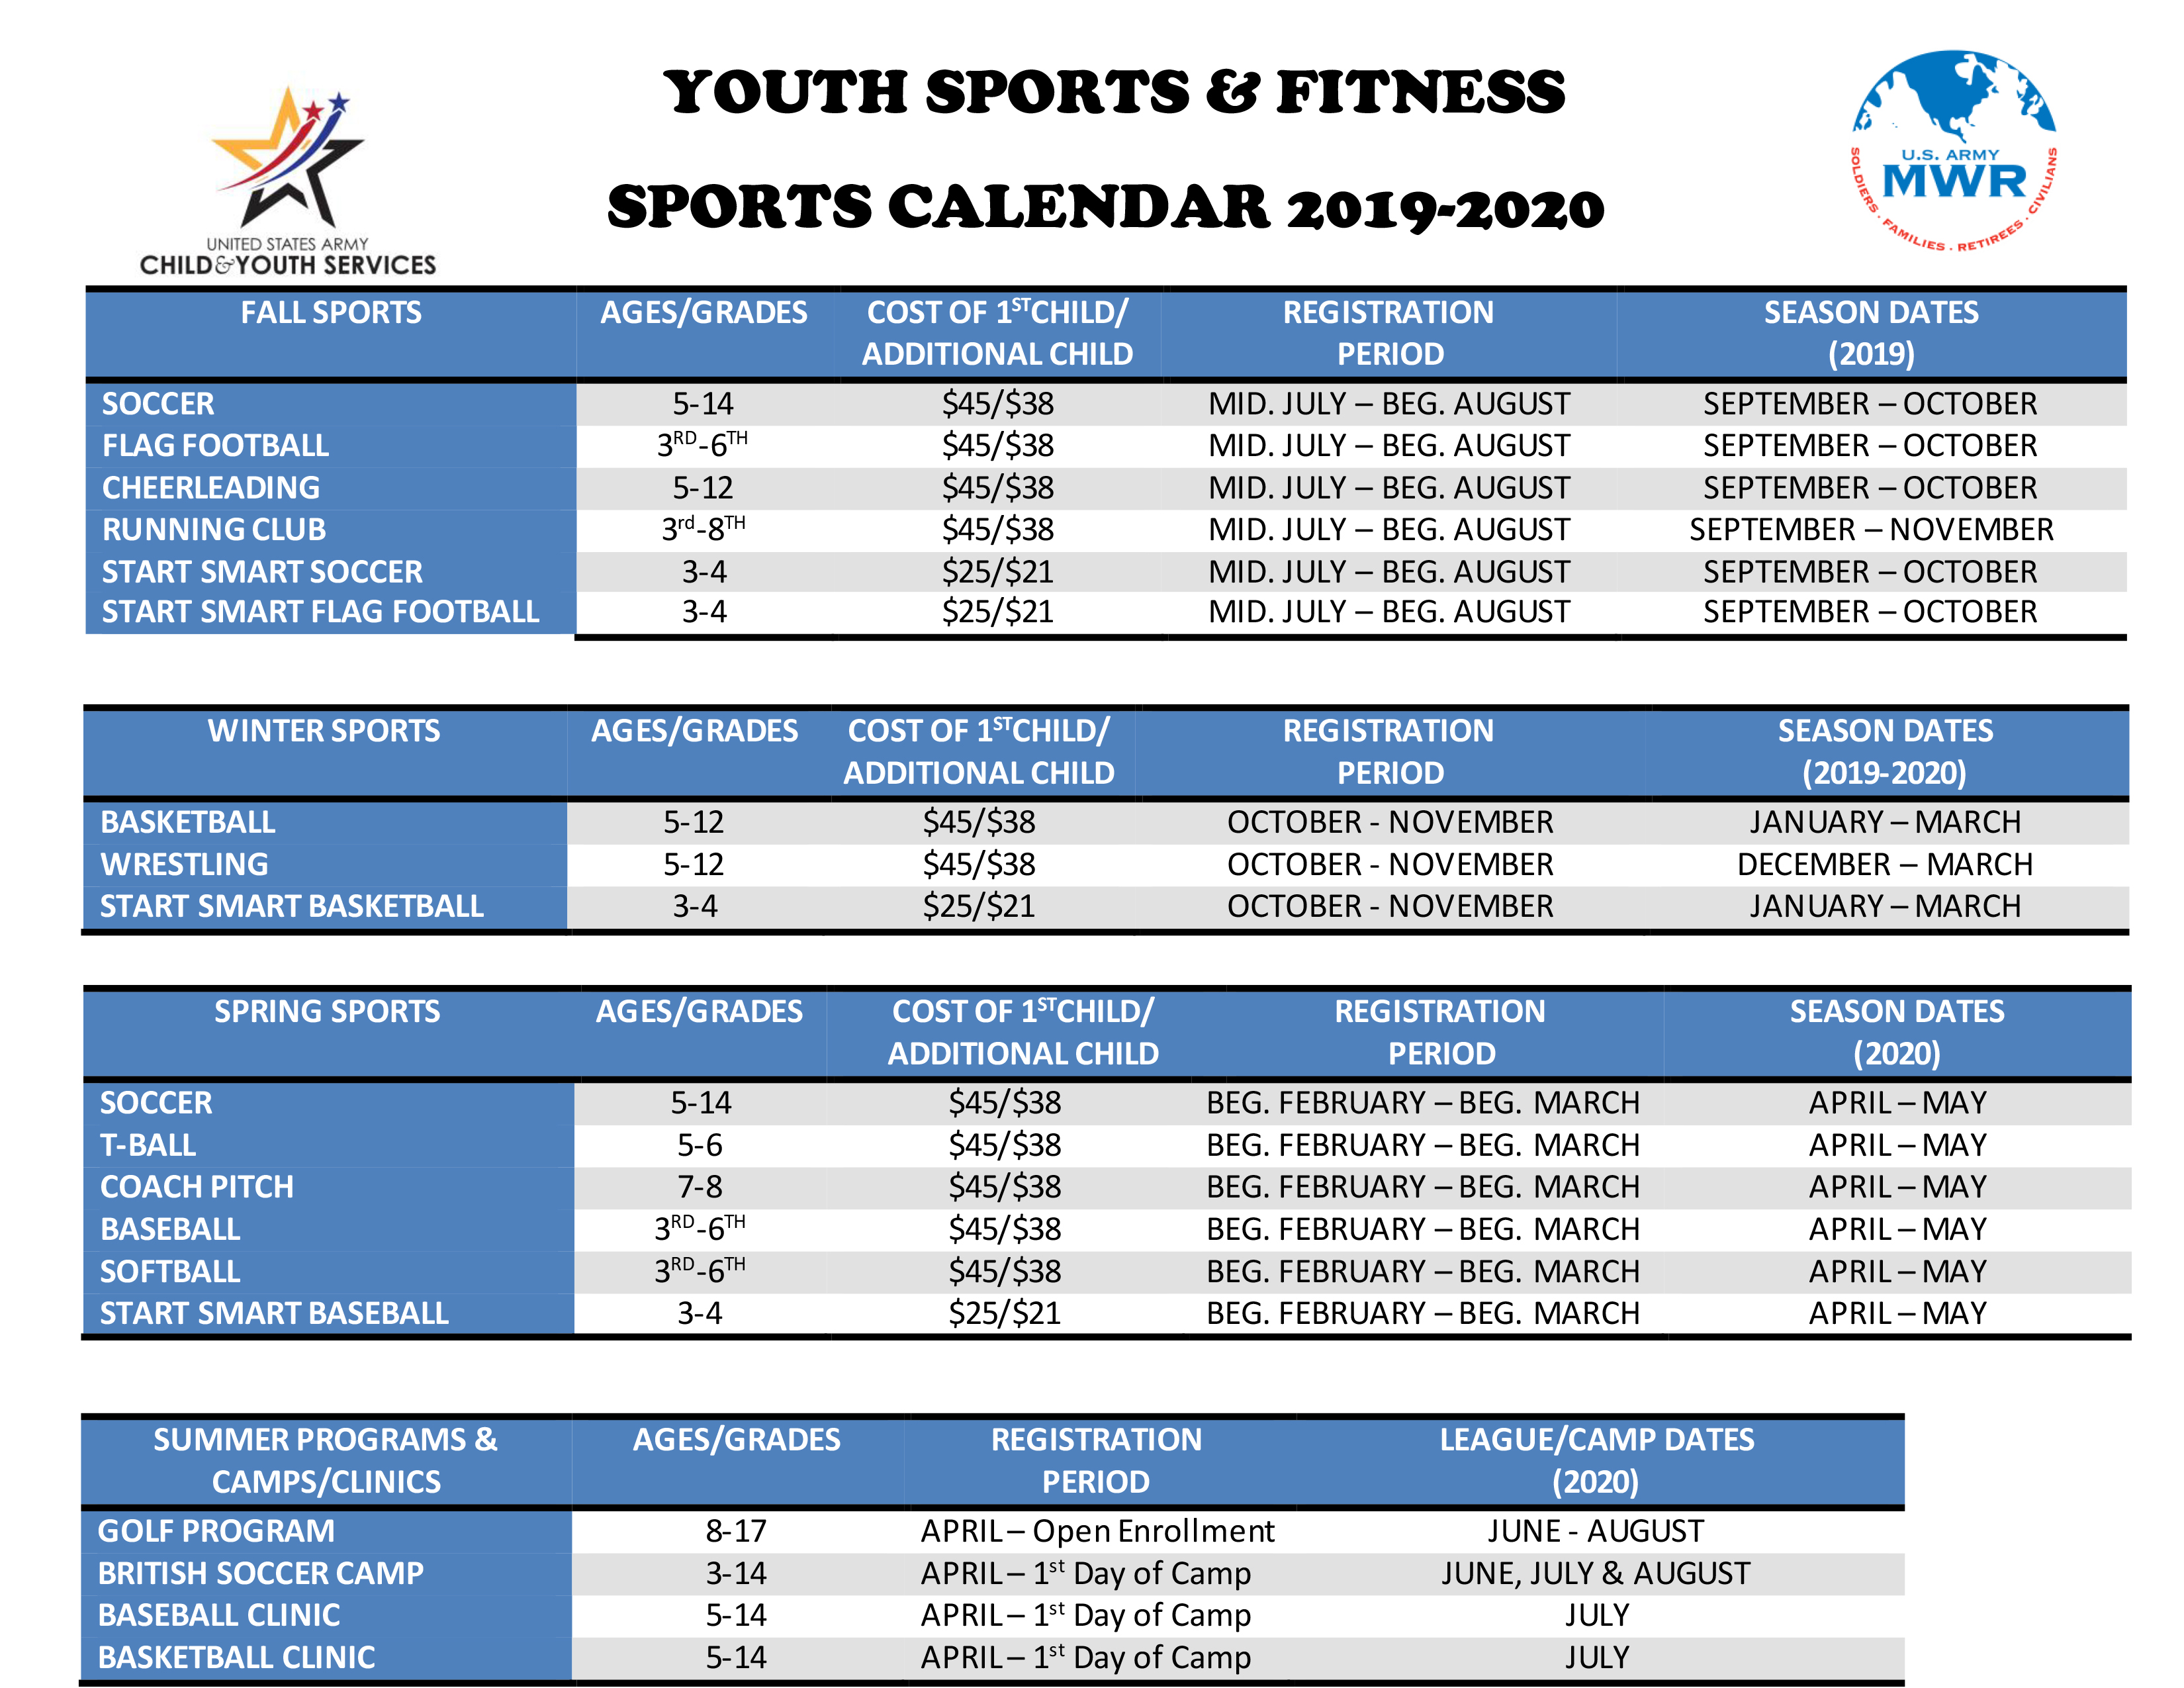 Youth_Sports_and_Fitness_calendar_2019-2020.jpg